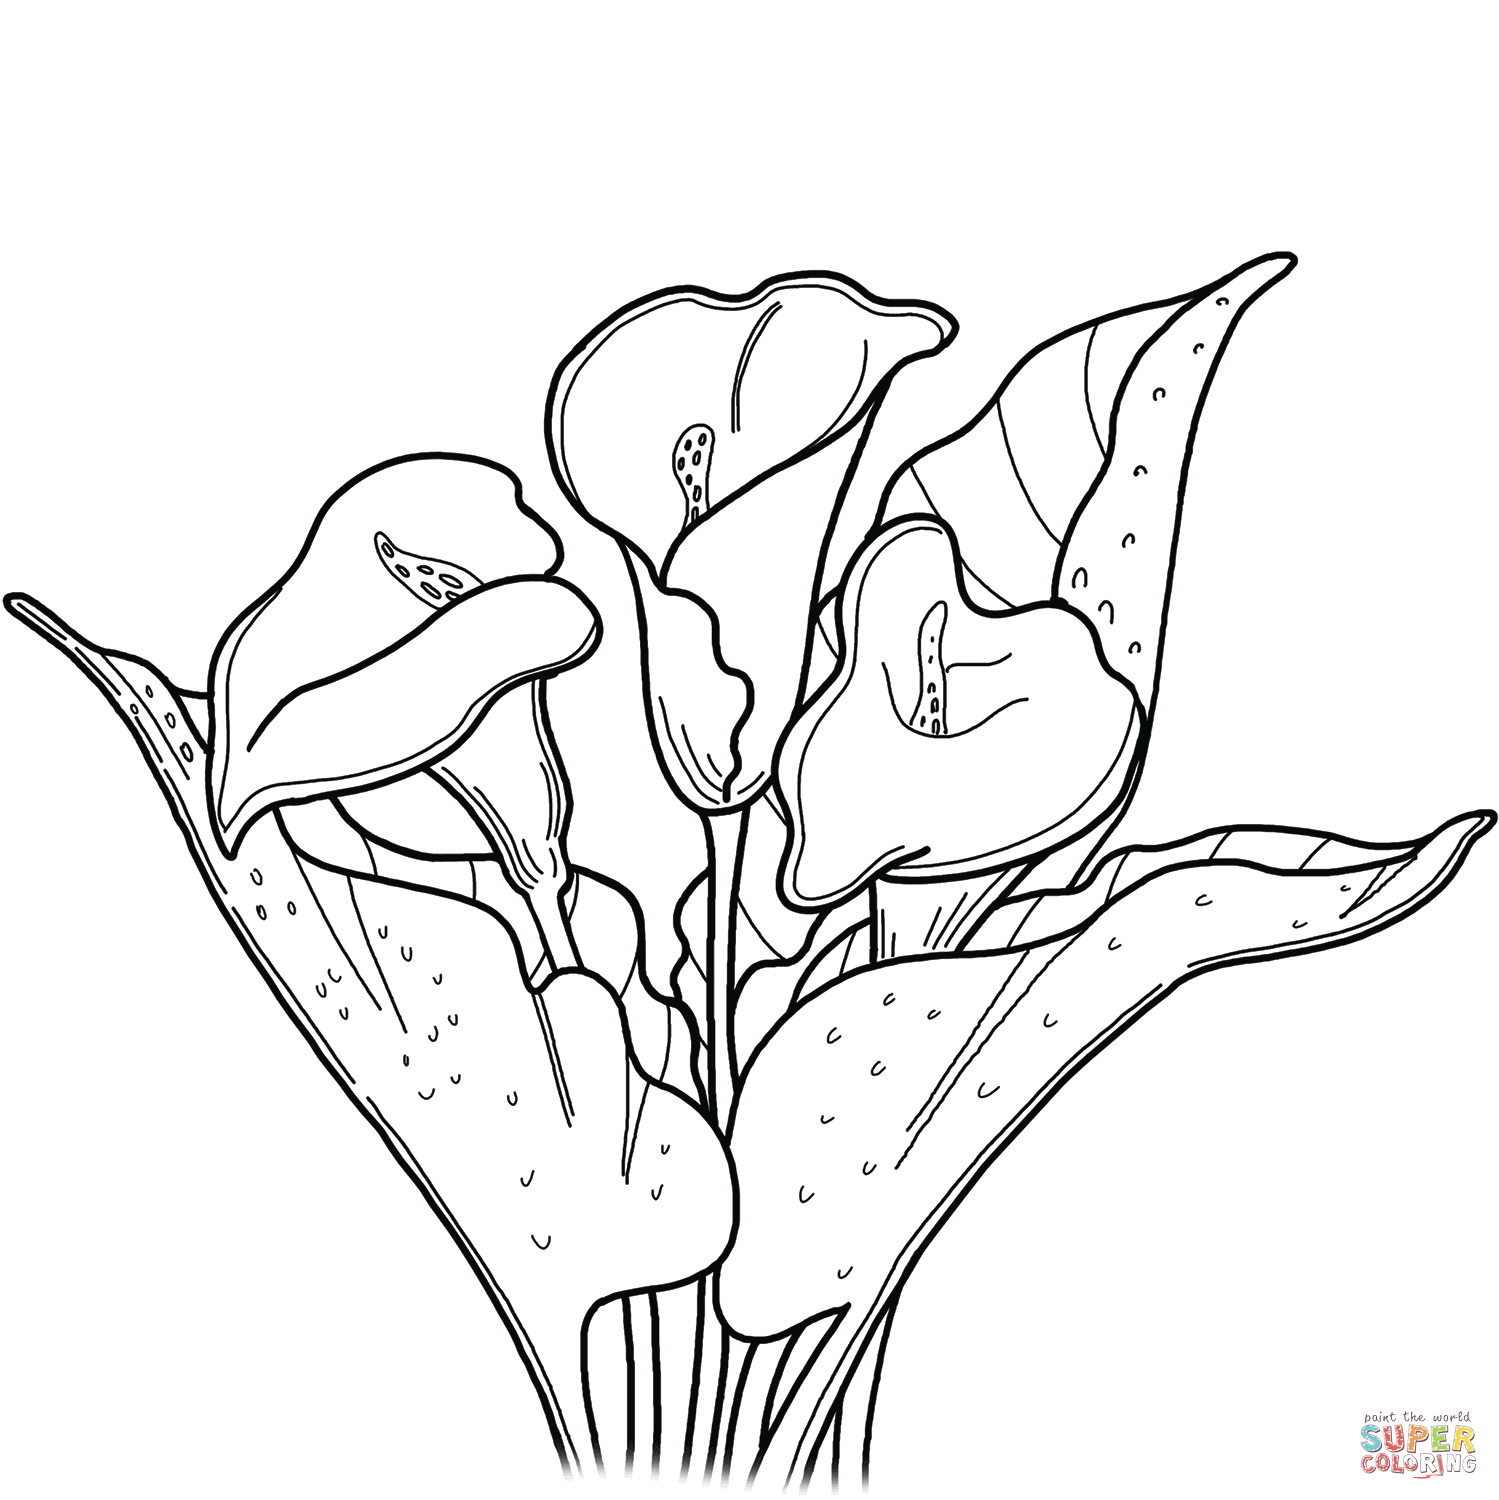 Calla Lily Coloring Page Free Printable Coloring Pages Flower Coloring Pages Coloring Pages Free Printable Coloring Pages